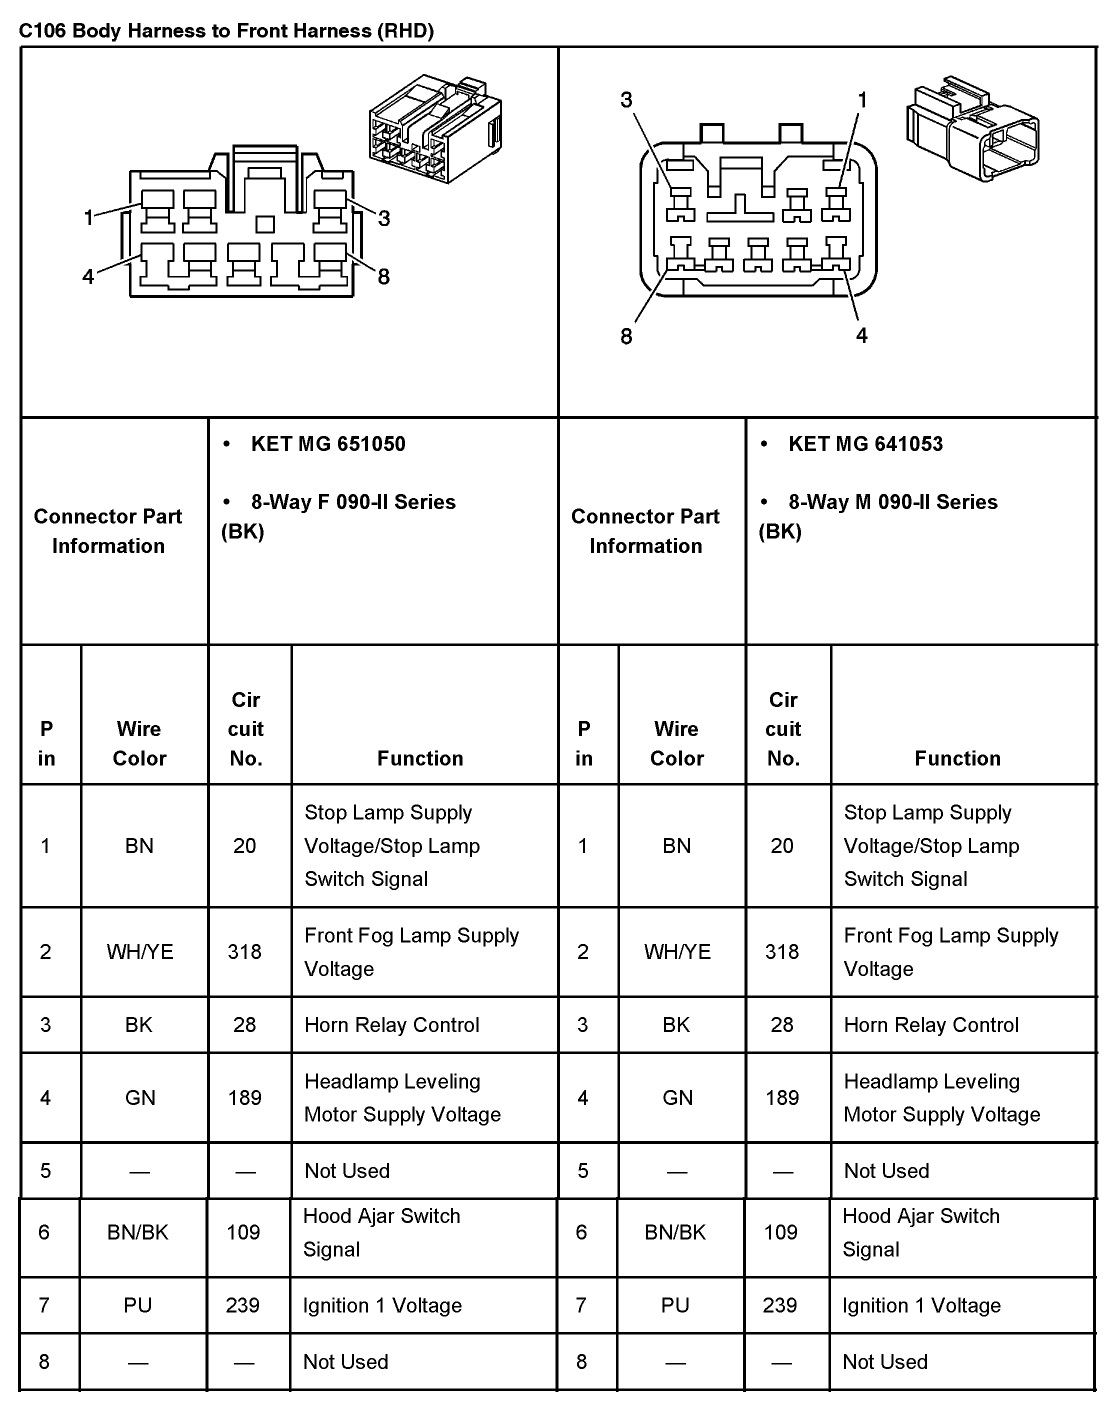 [DIAGRAM_1CA]  FC2E16C Chevrolet Tracker 2002 Fuse Box Diagram | Wiring Library | Chevrolet Optra Fuse Box |  | Wiring Library